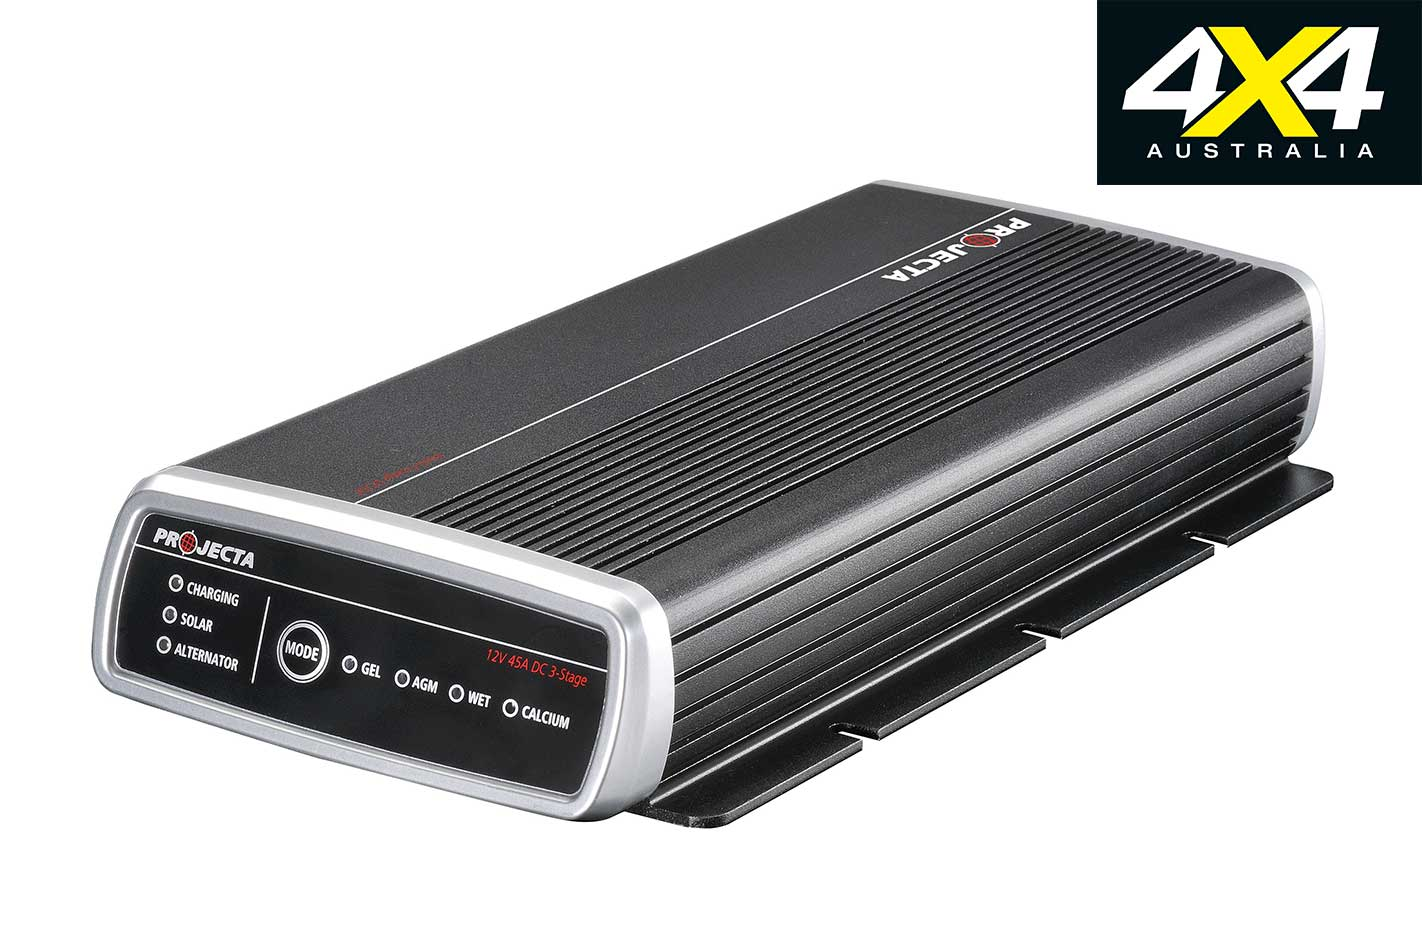 New 4x4 Gear: Piranha dual-battery, Projecta charger, Dr